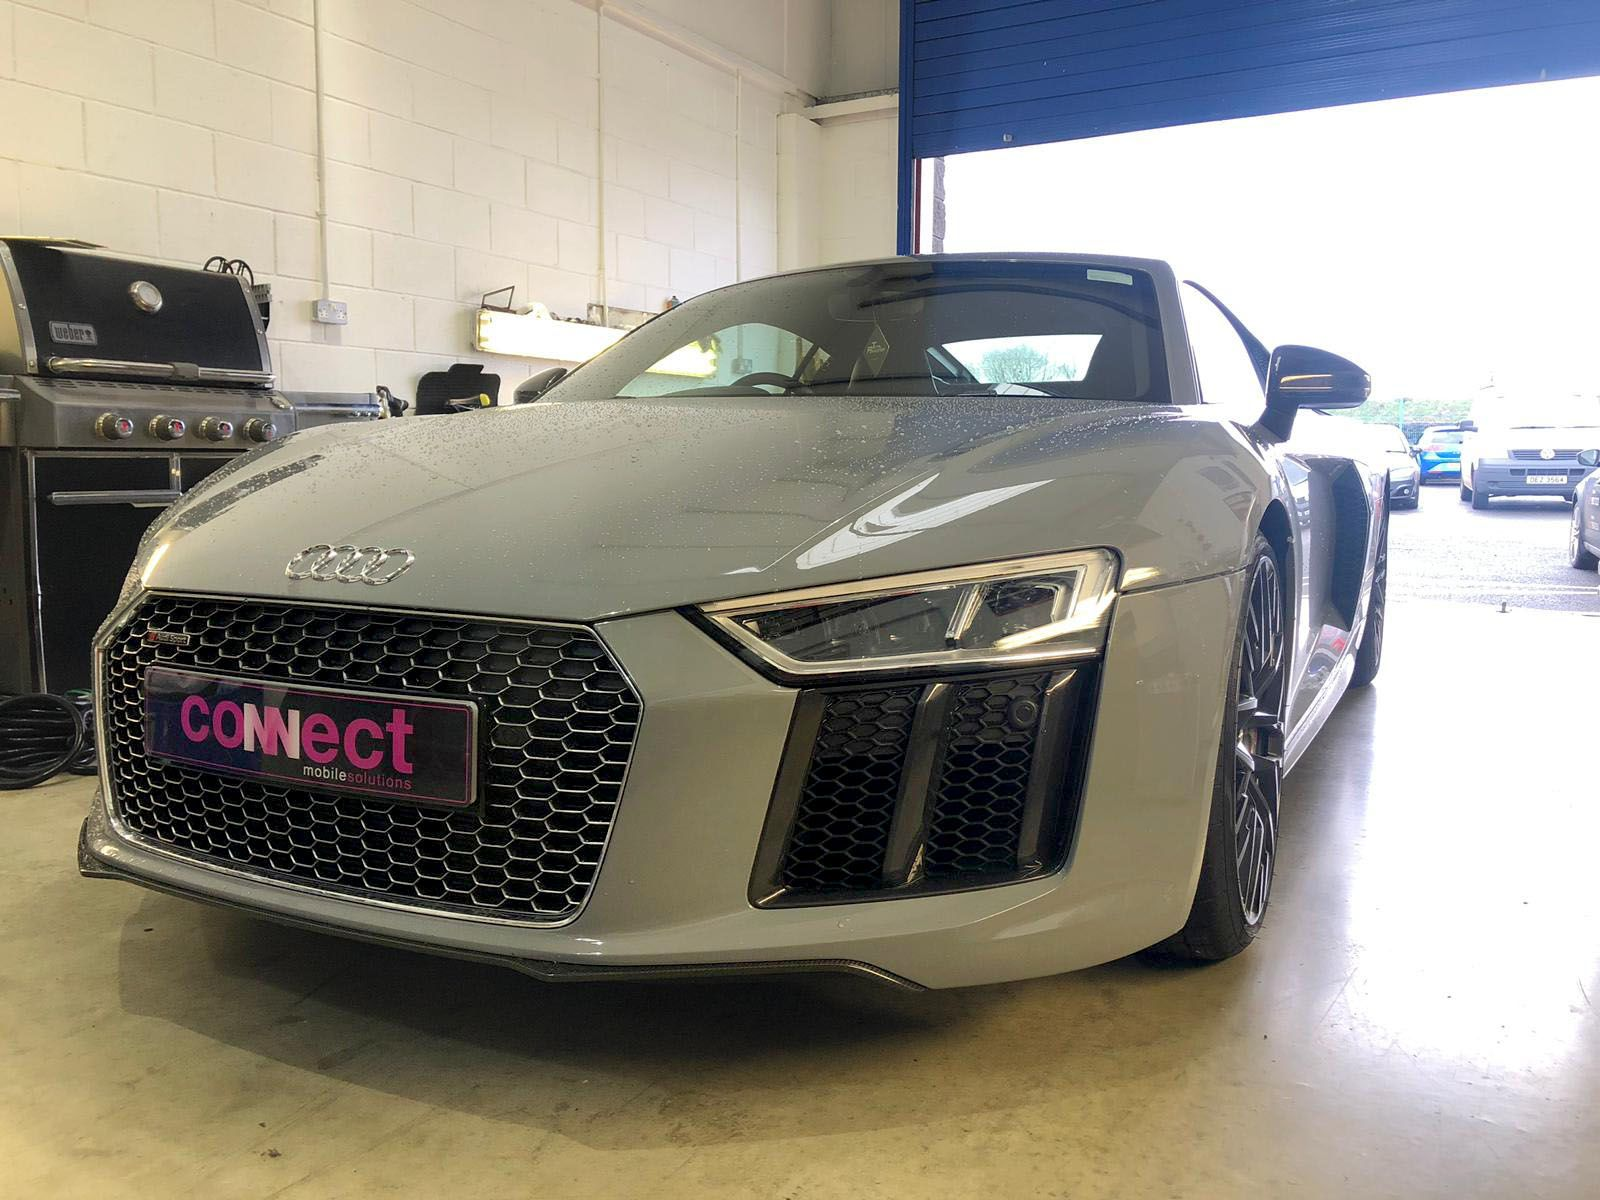 Audi R8 V10 with radar detector fitted